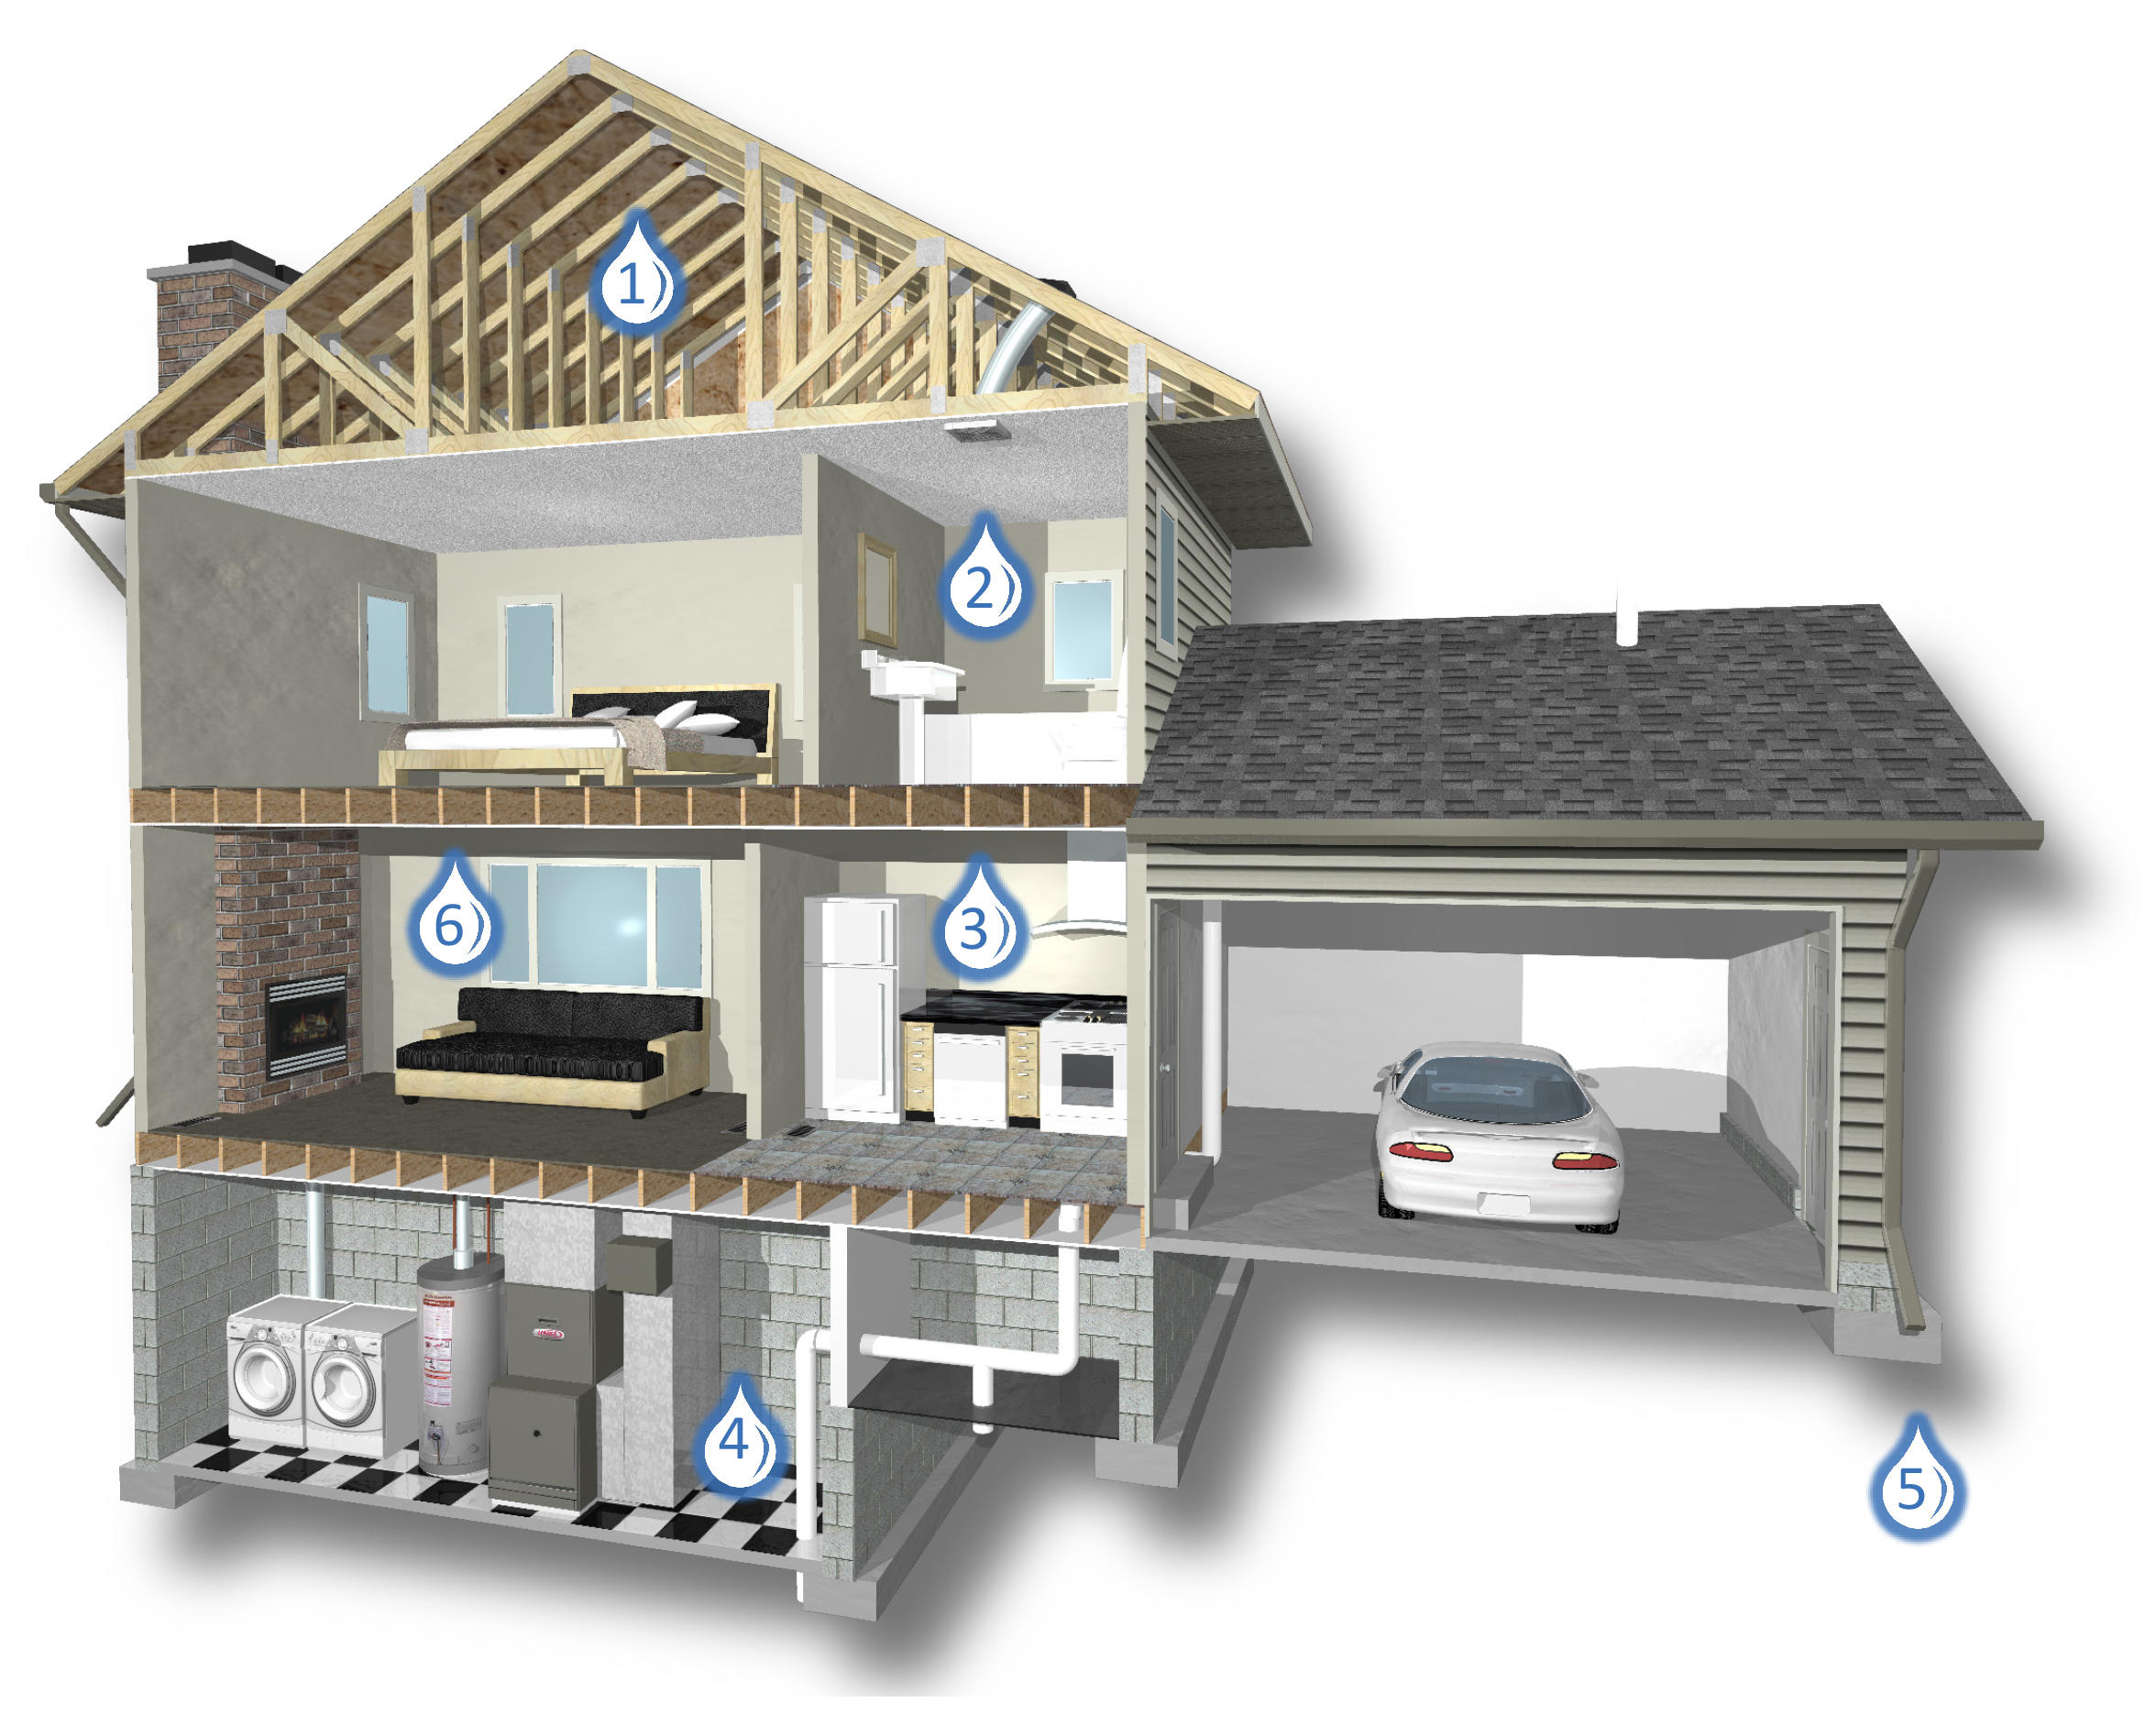 Mold and moisture house diagram